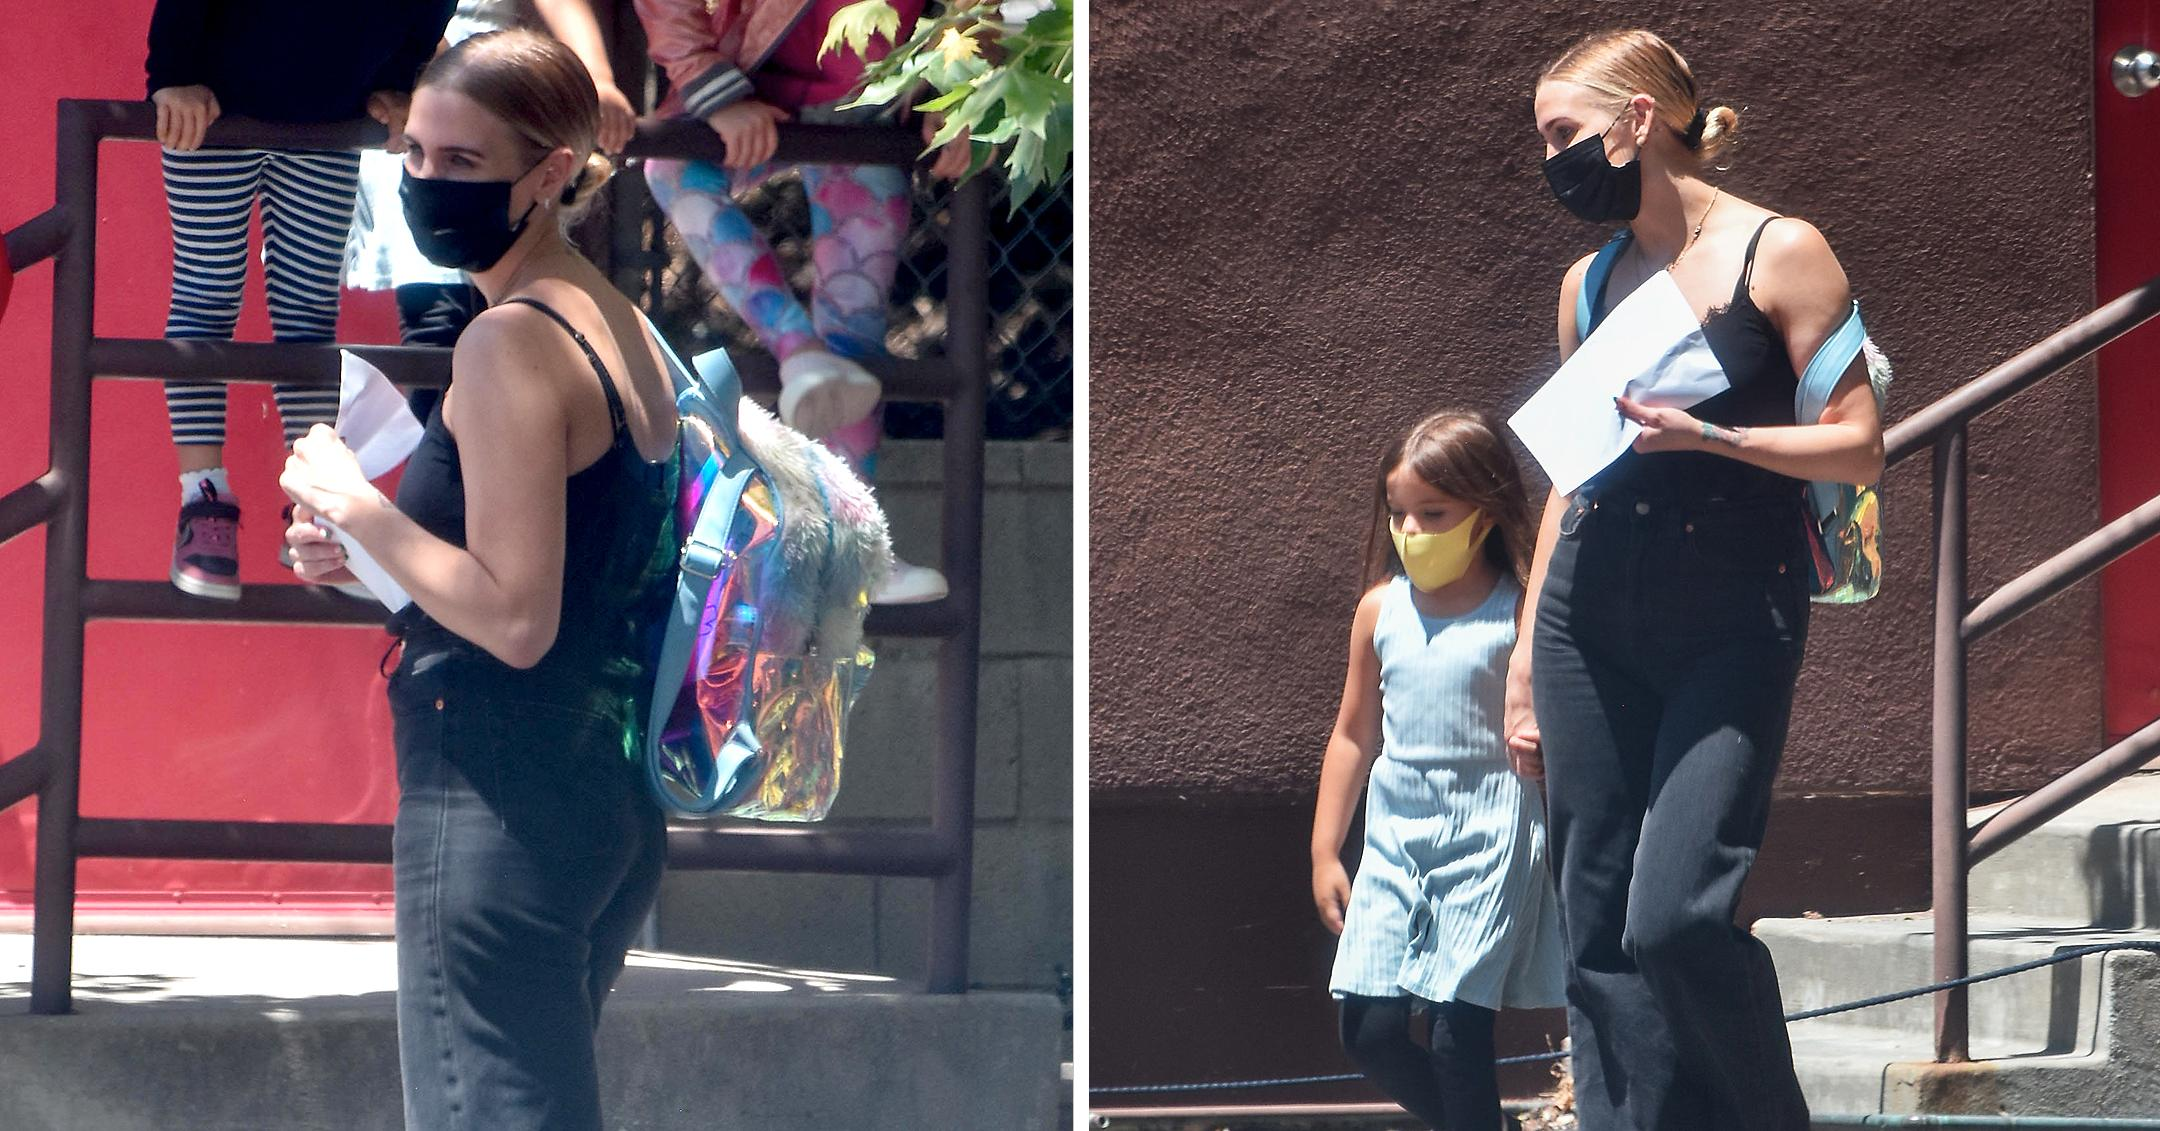 ashlee simpson is seen at the school pick up